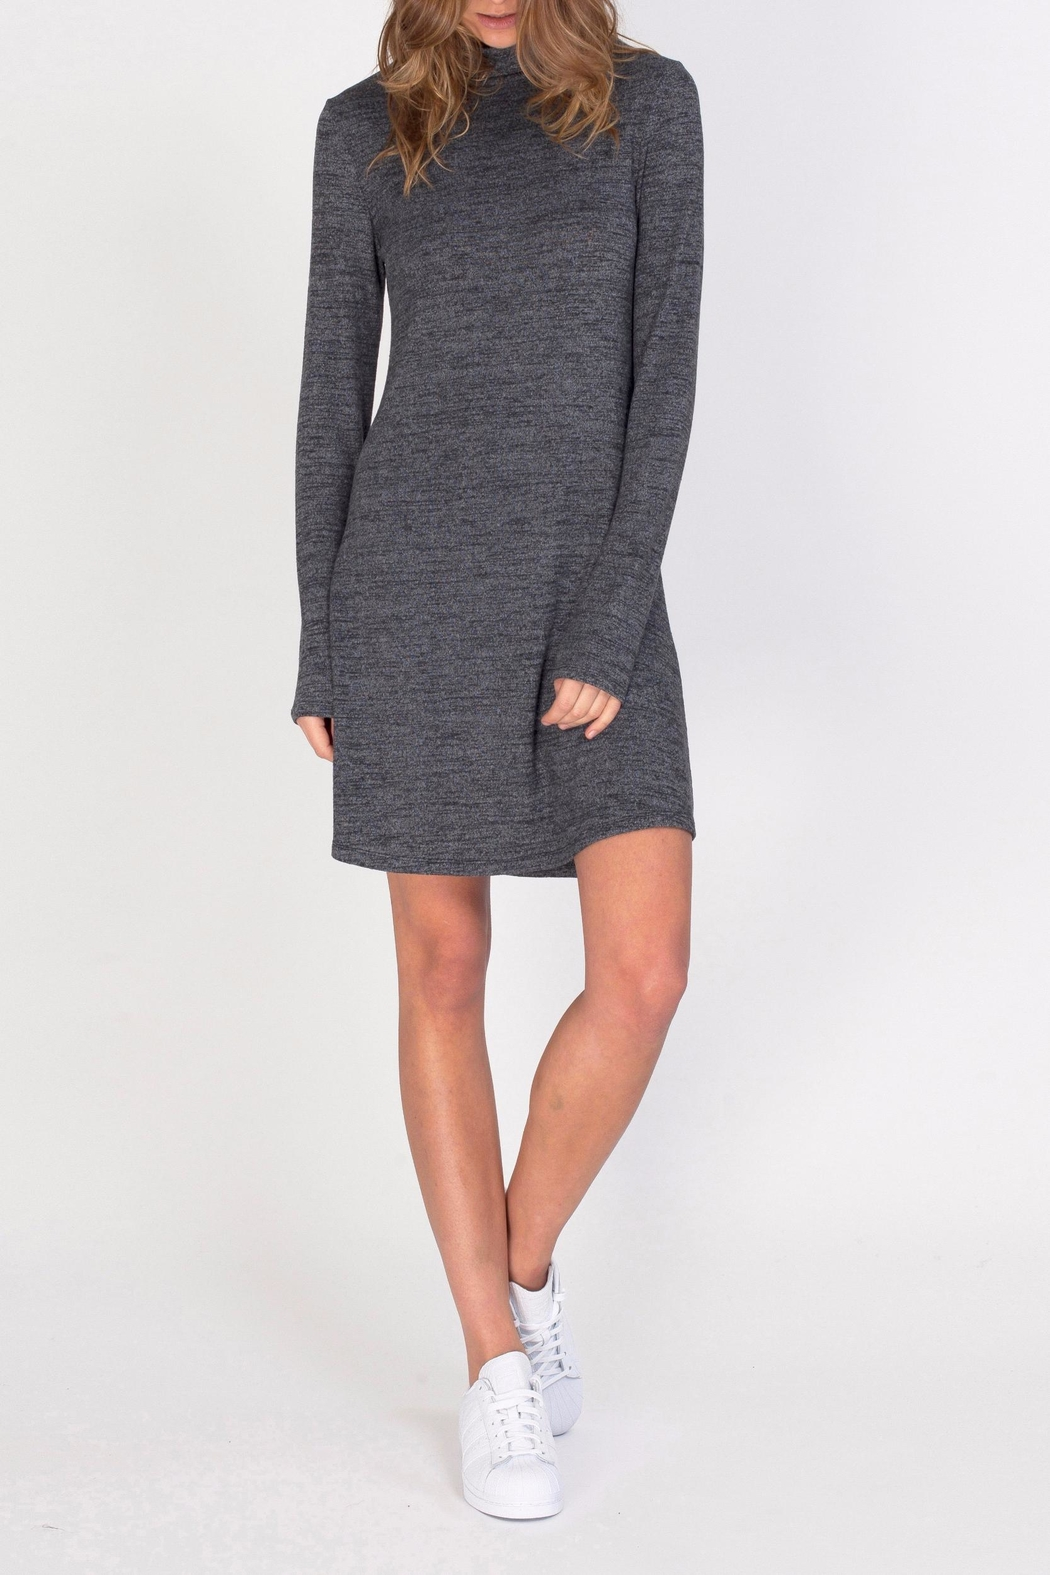 Gentle Fawn Soft Turtleneck Dress - Main Image